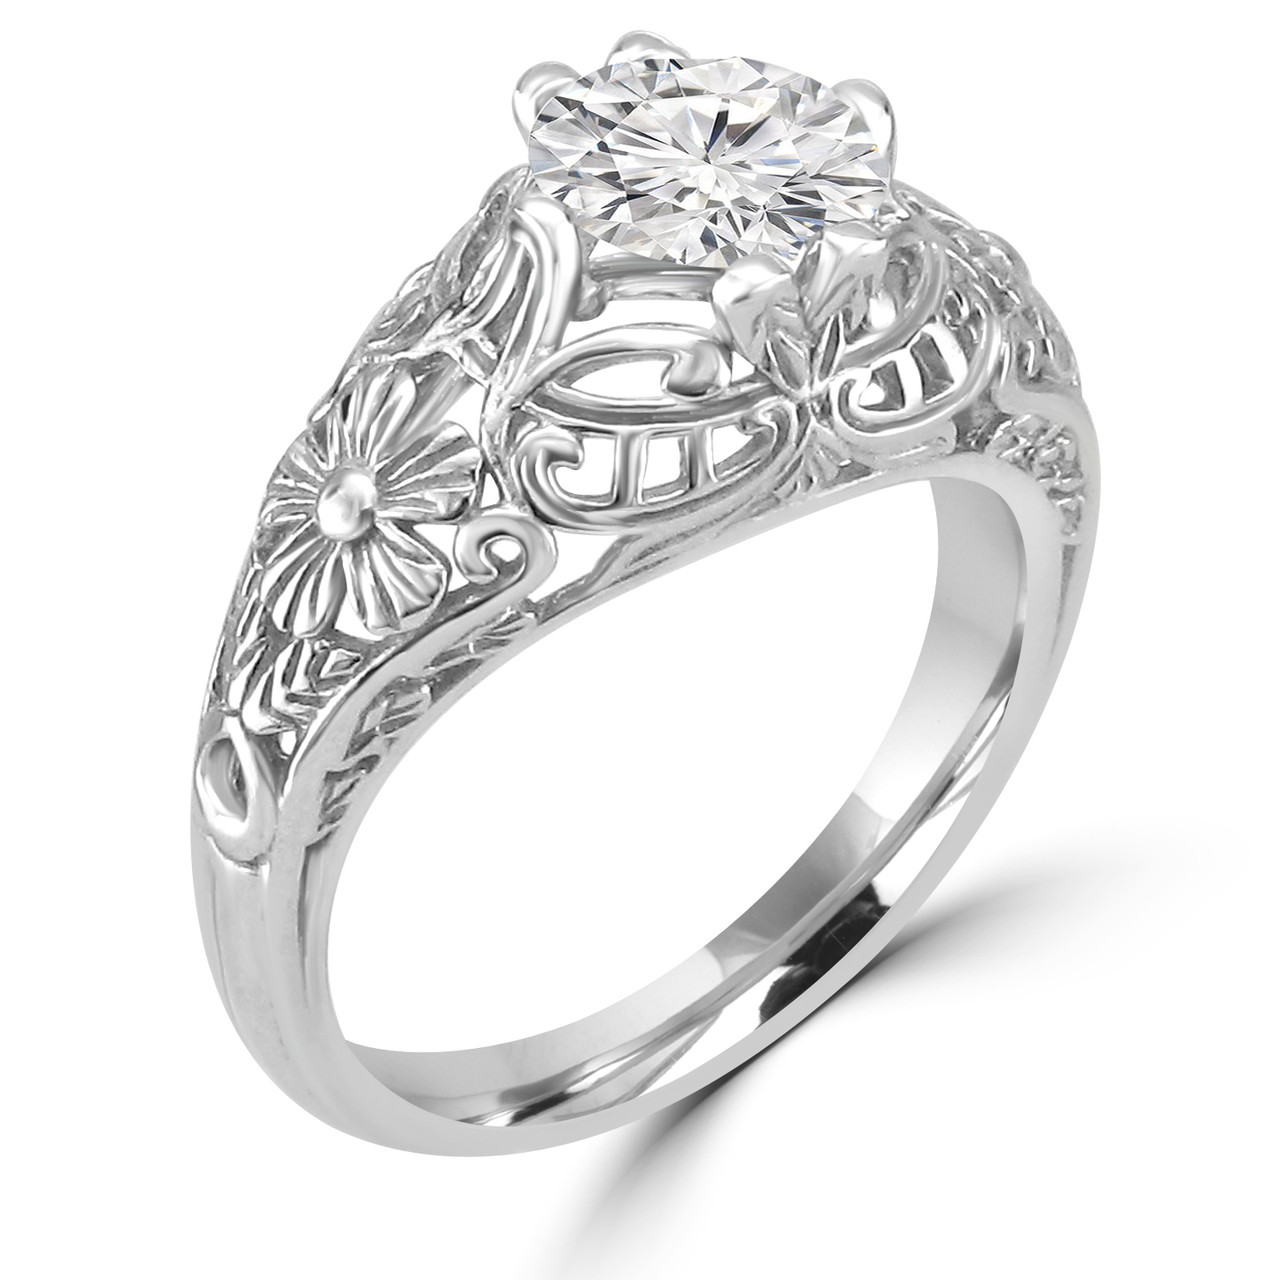 14k white gold vintage inspired engagement ring shirin style - Vintage Inspired Wedding Rings